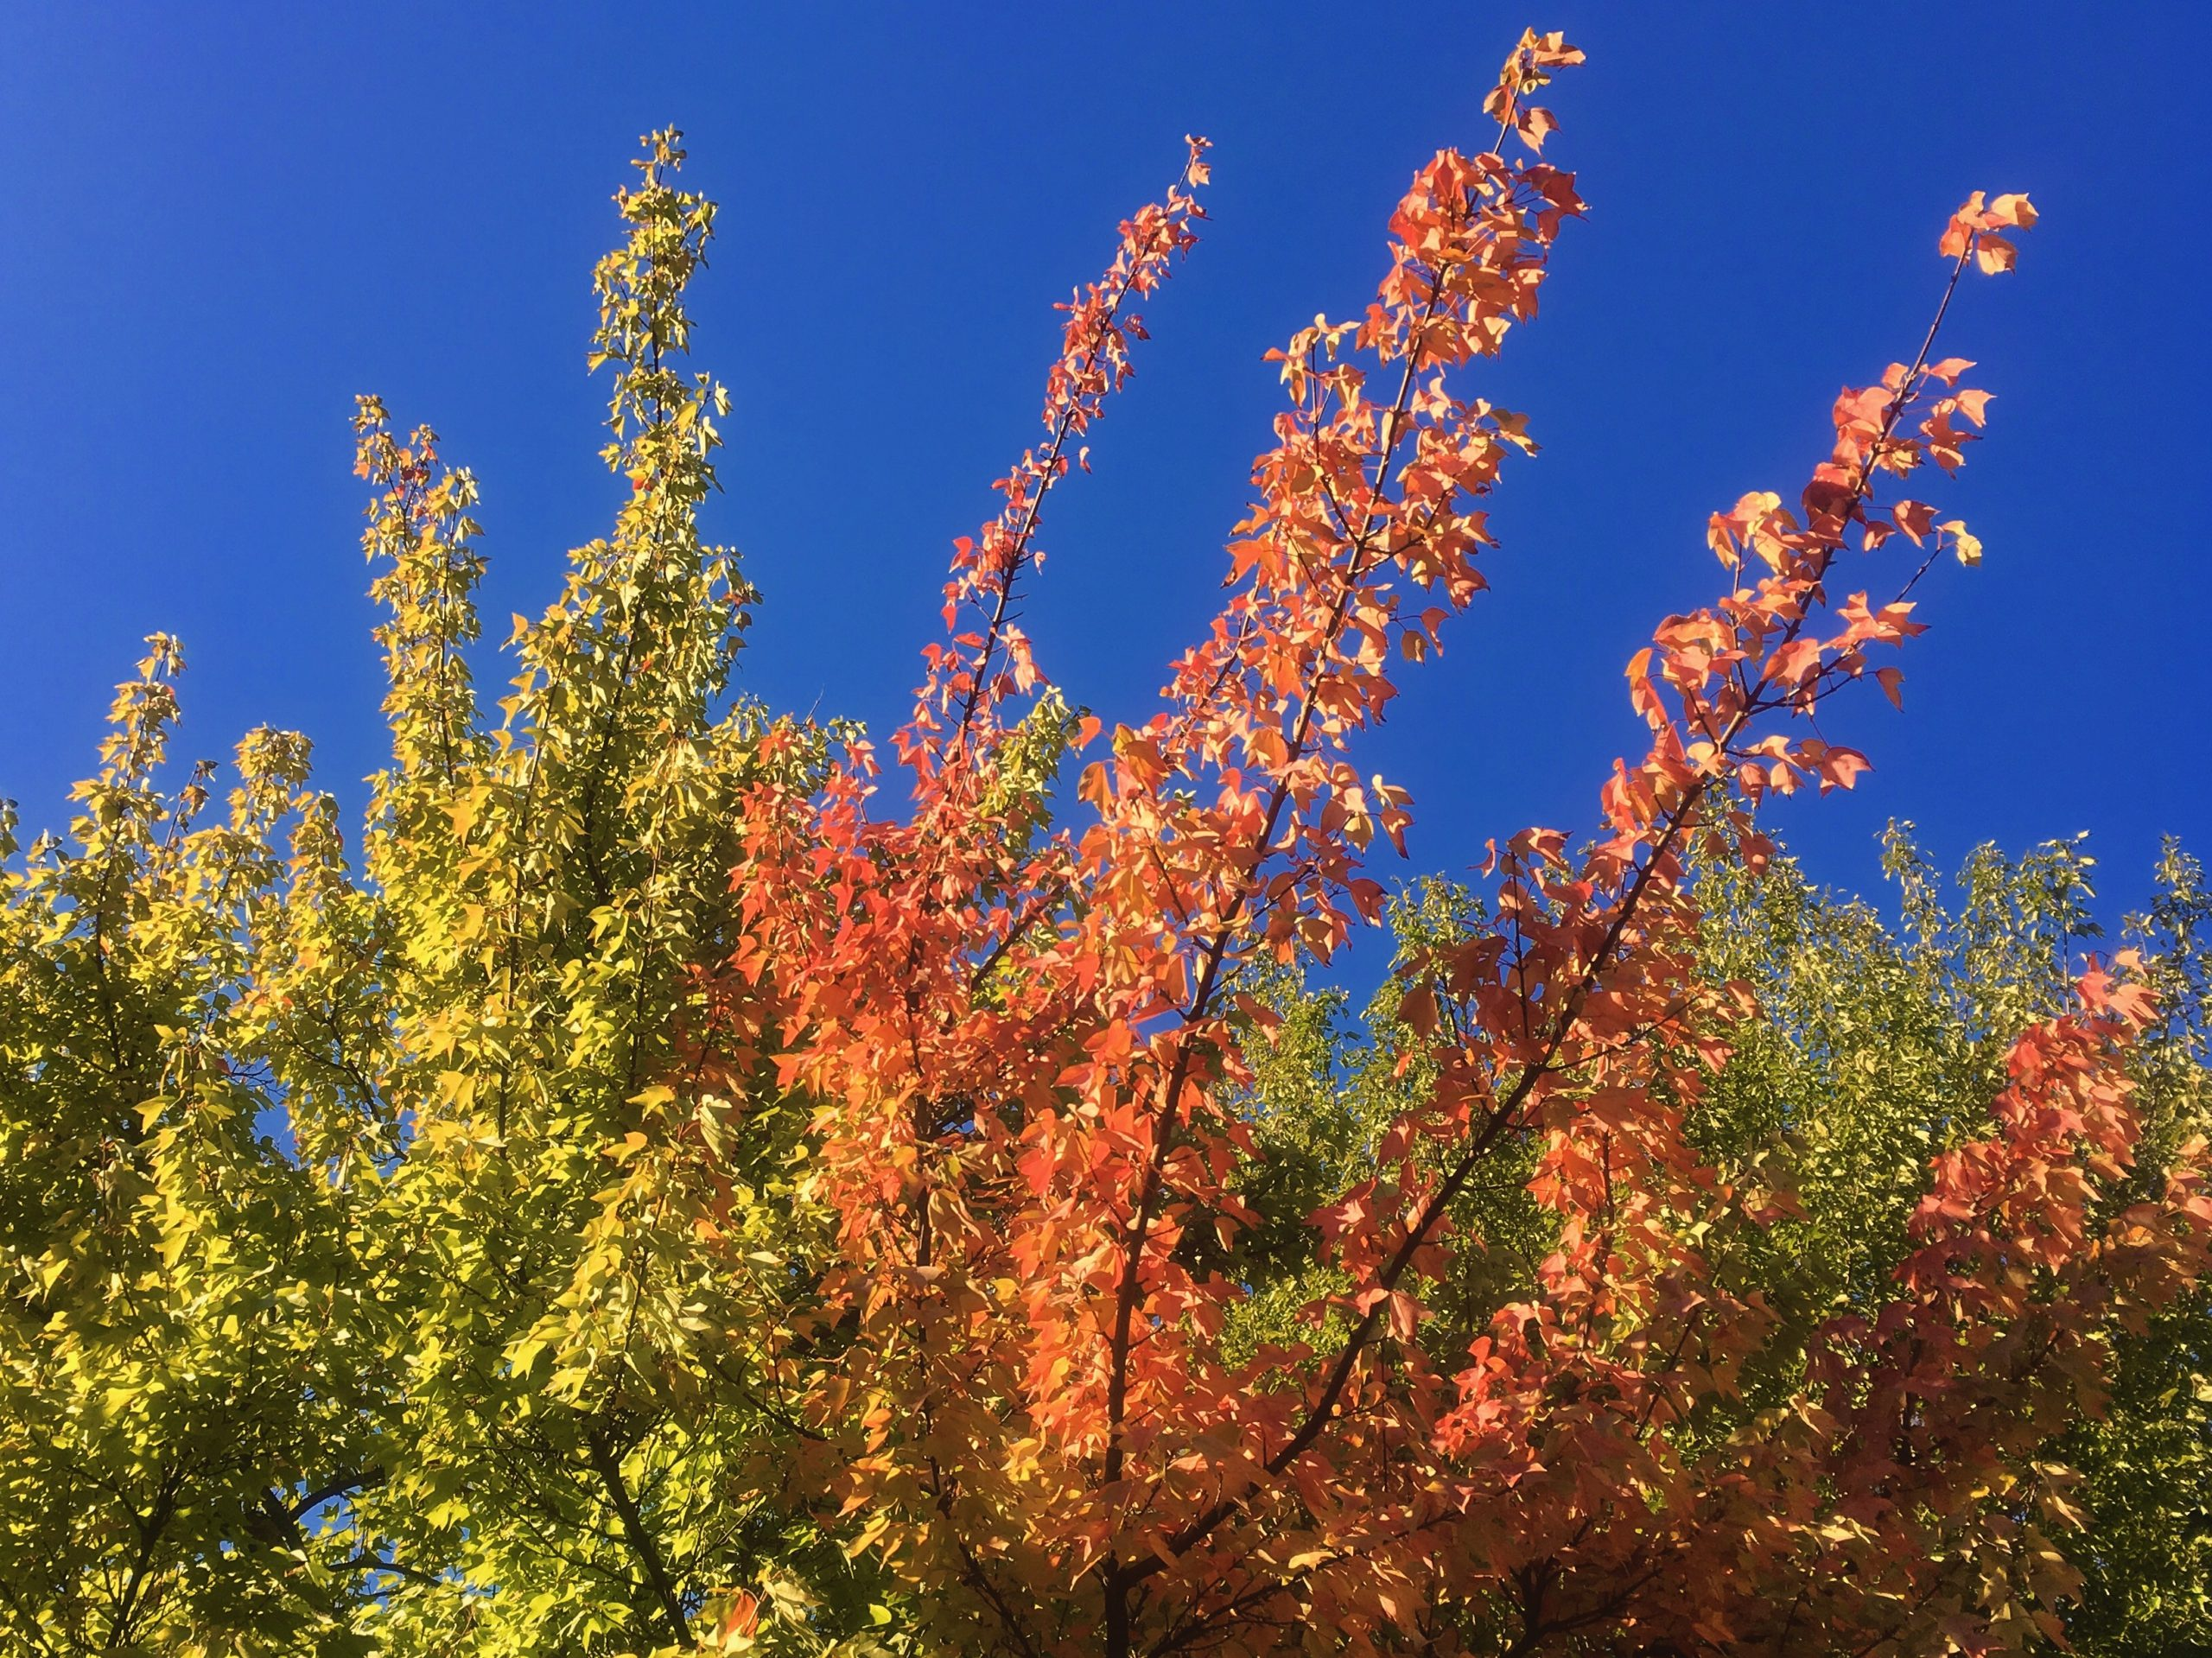 Bright autumn leaves on the tops of trees in the blue sky